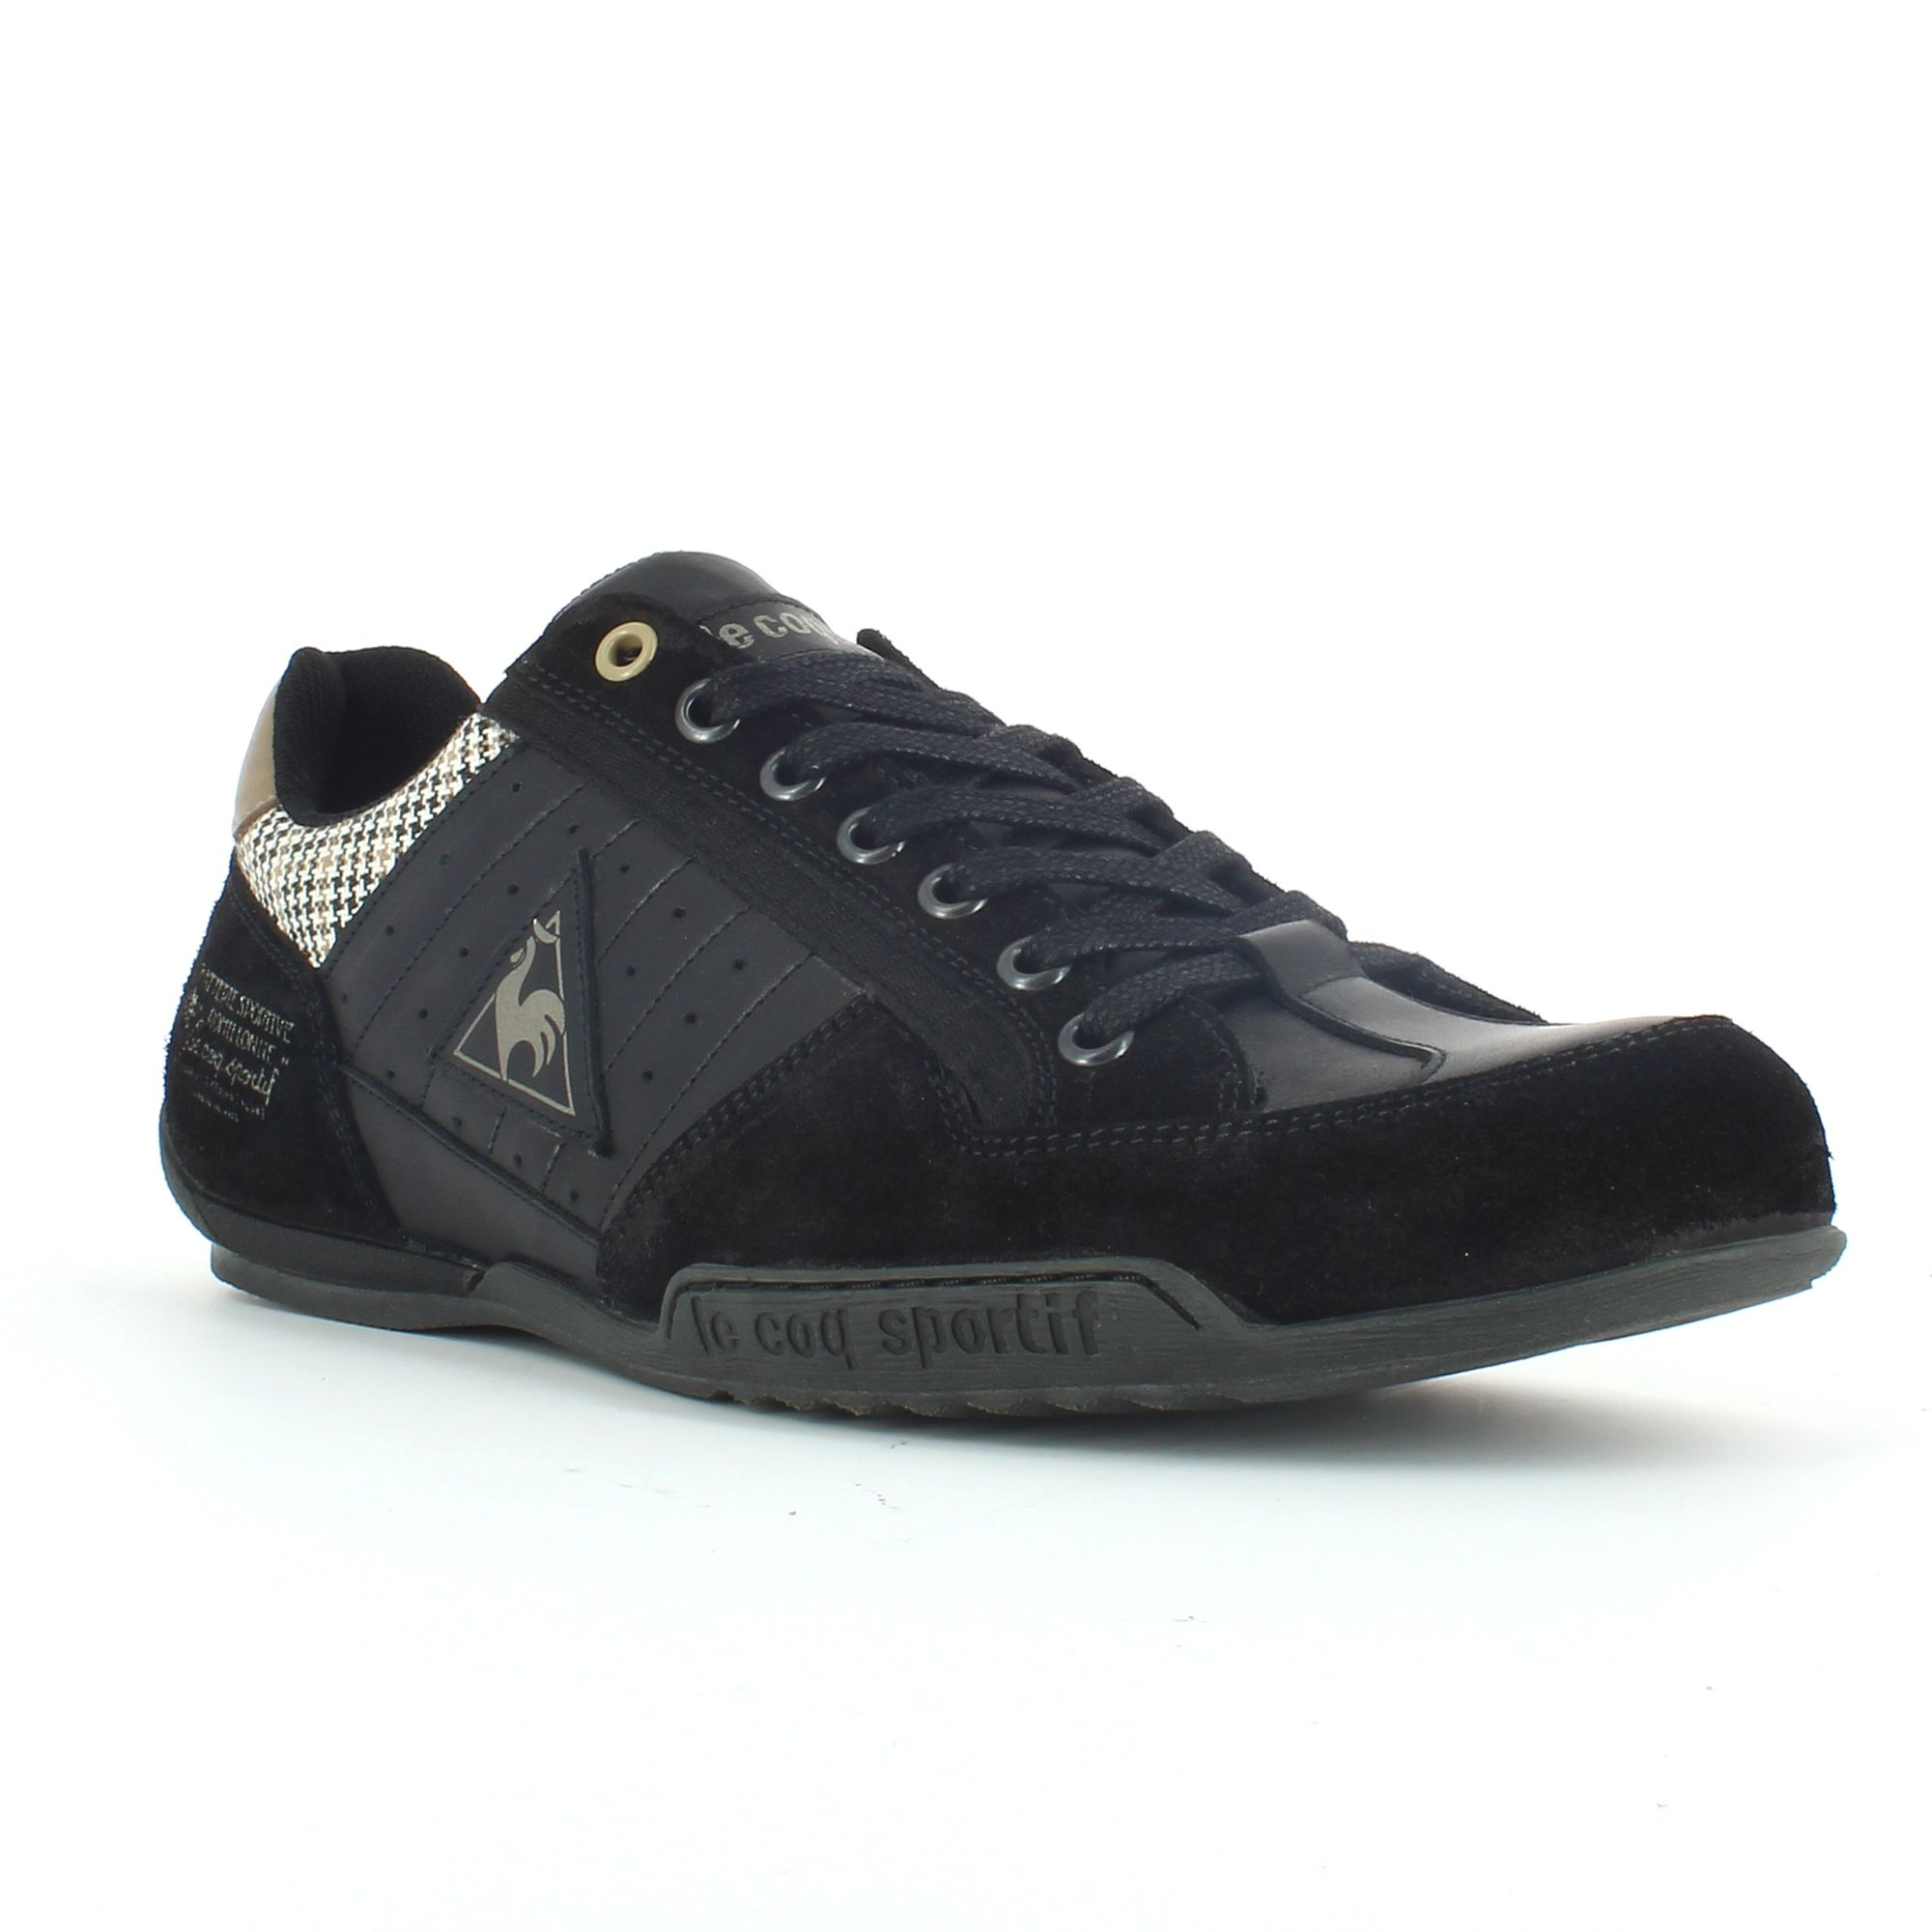 le coq sportif baskets turin leather homme